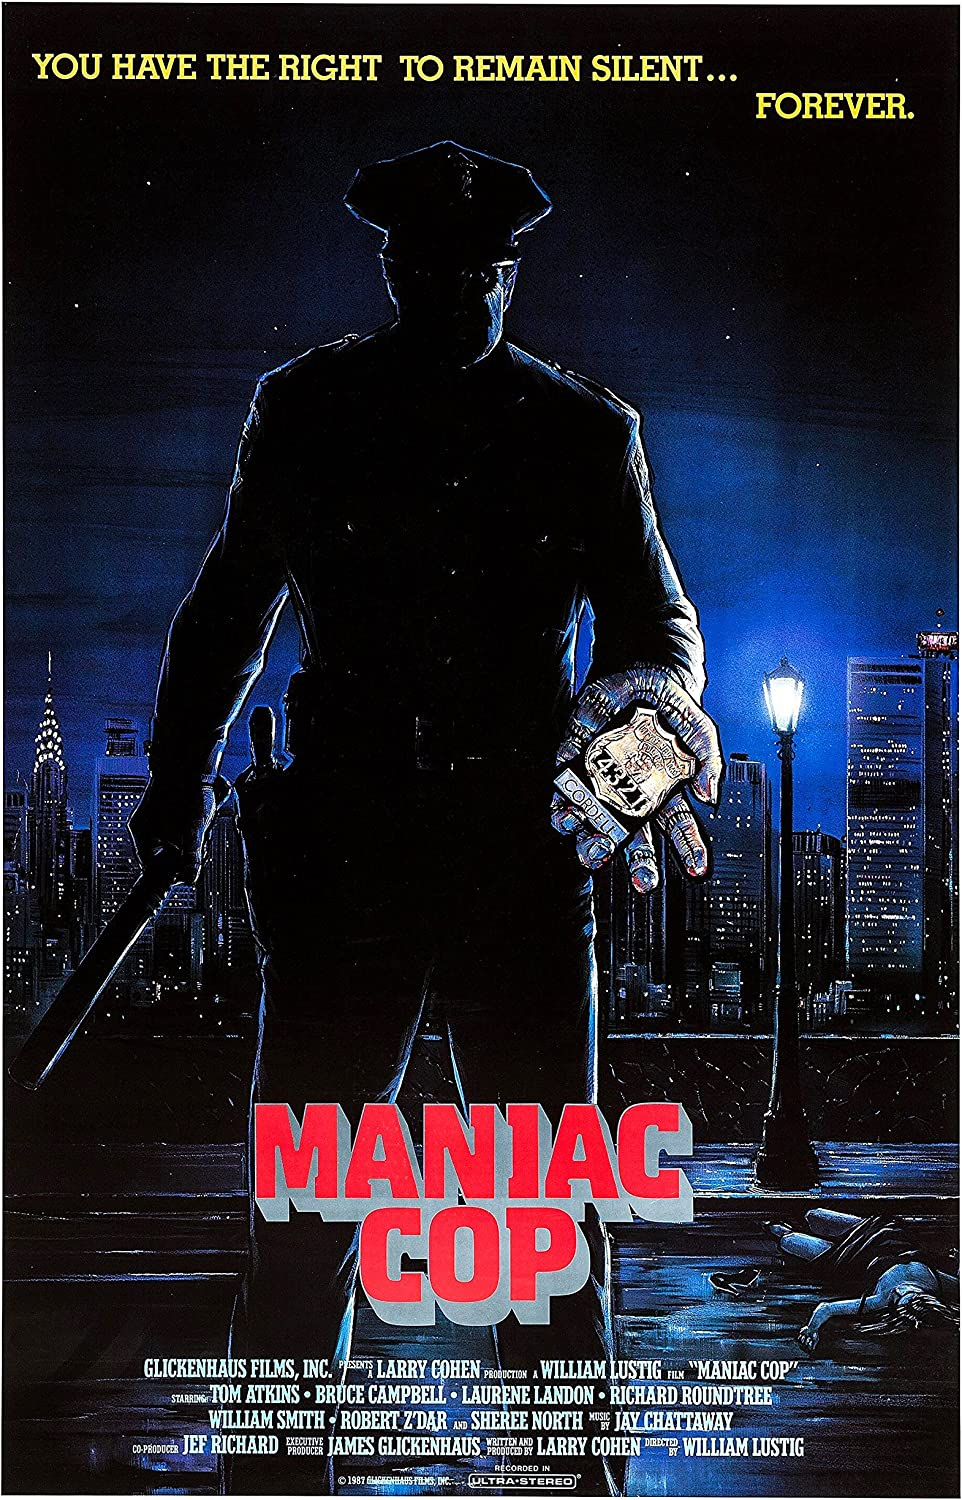 Maniac Cop (1988) Movie Poster 24x36 inches